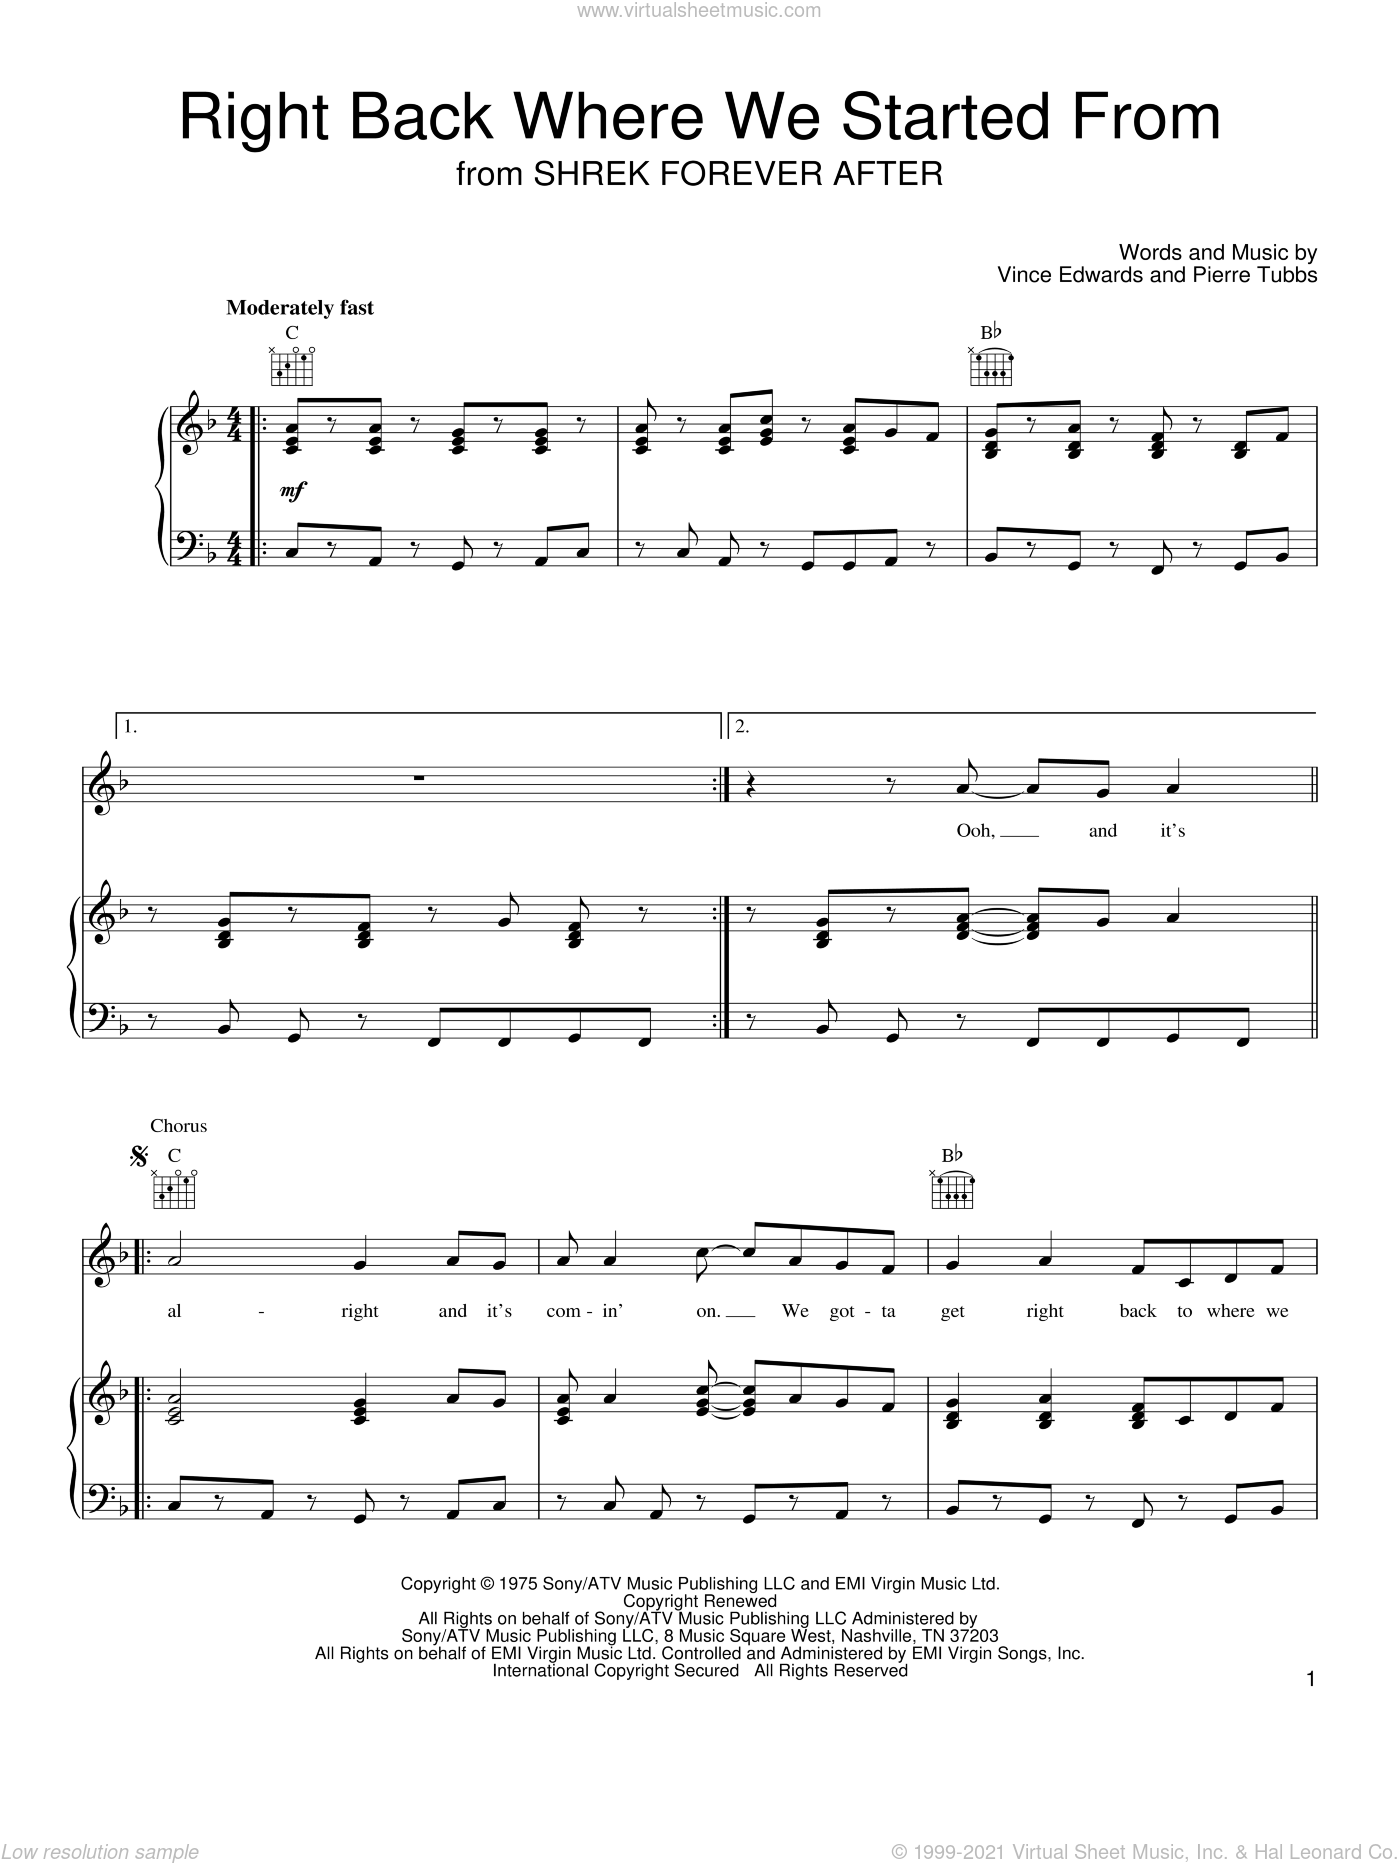 Right Back Where We Started From sheet music for voice, piano or guitar by Maxine Nightingale, Pierre Tubbs and Vince Edwards, intermediate skill level